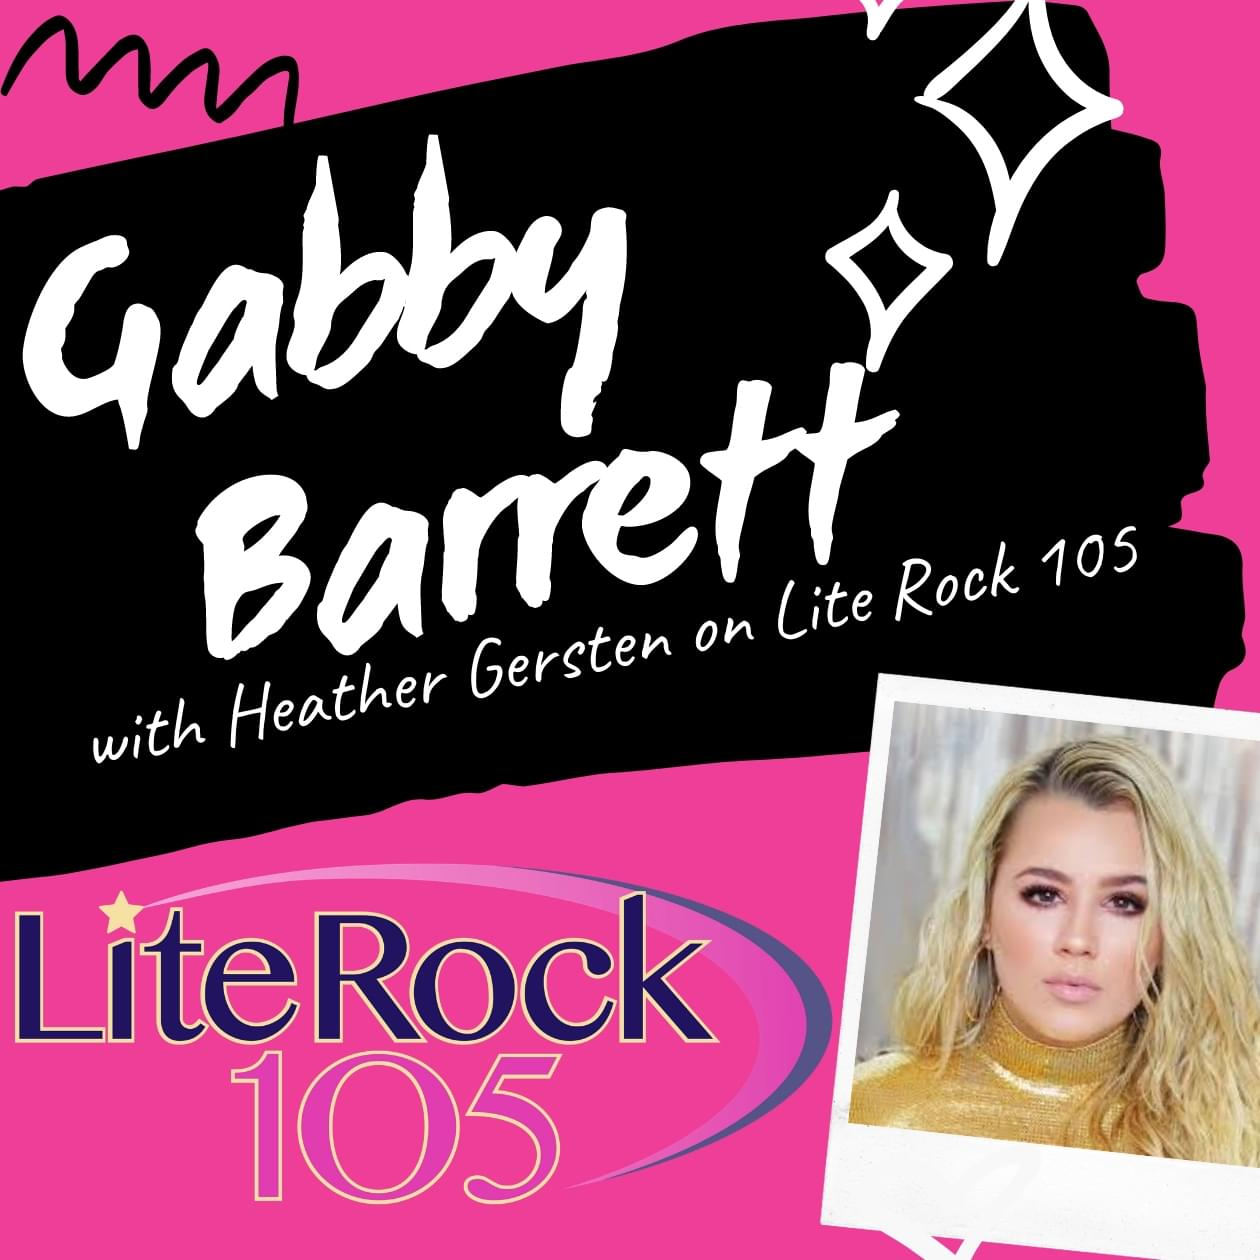 WATCH >> Gabby Barrett on Lite Rock 105 Zoom!